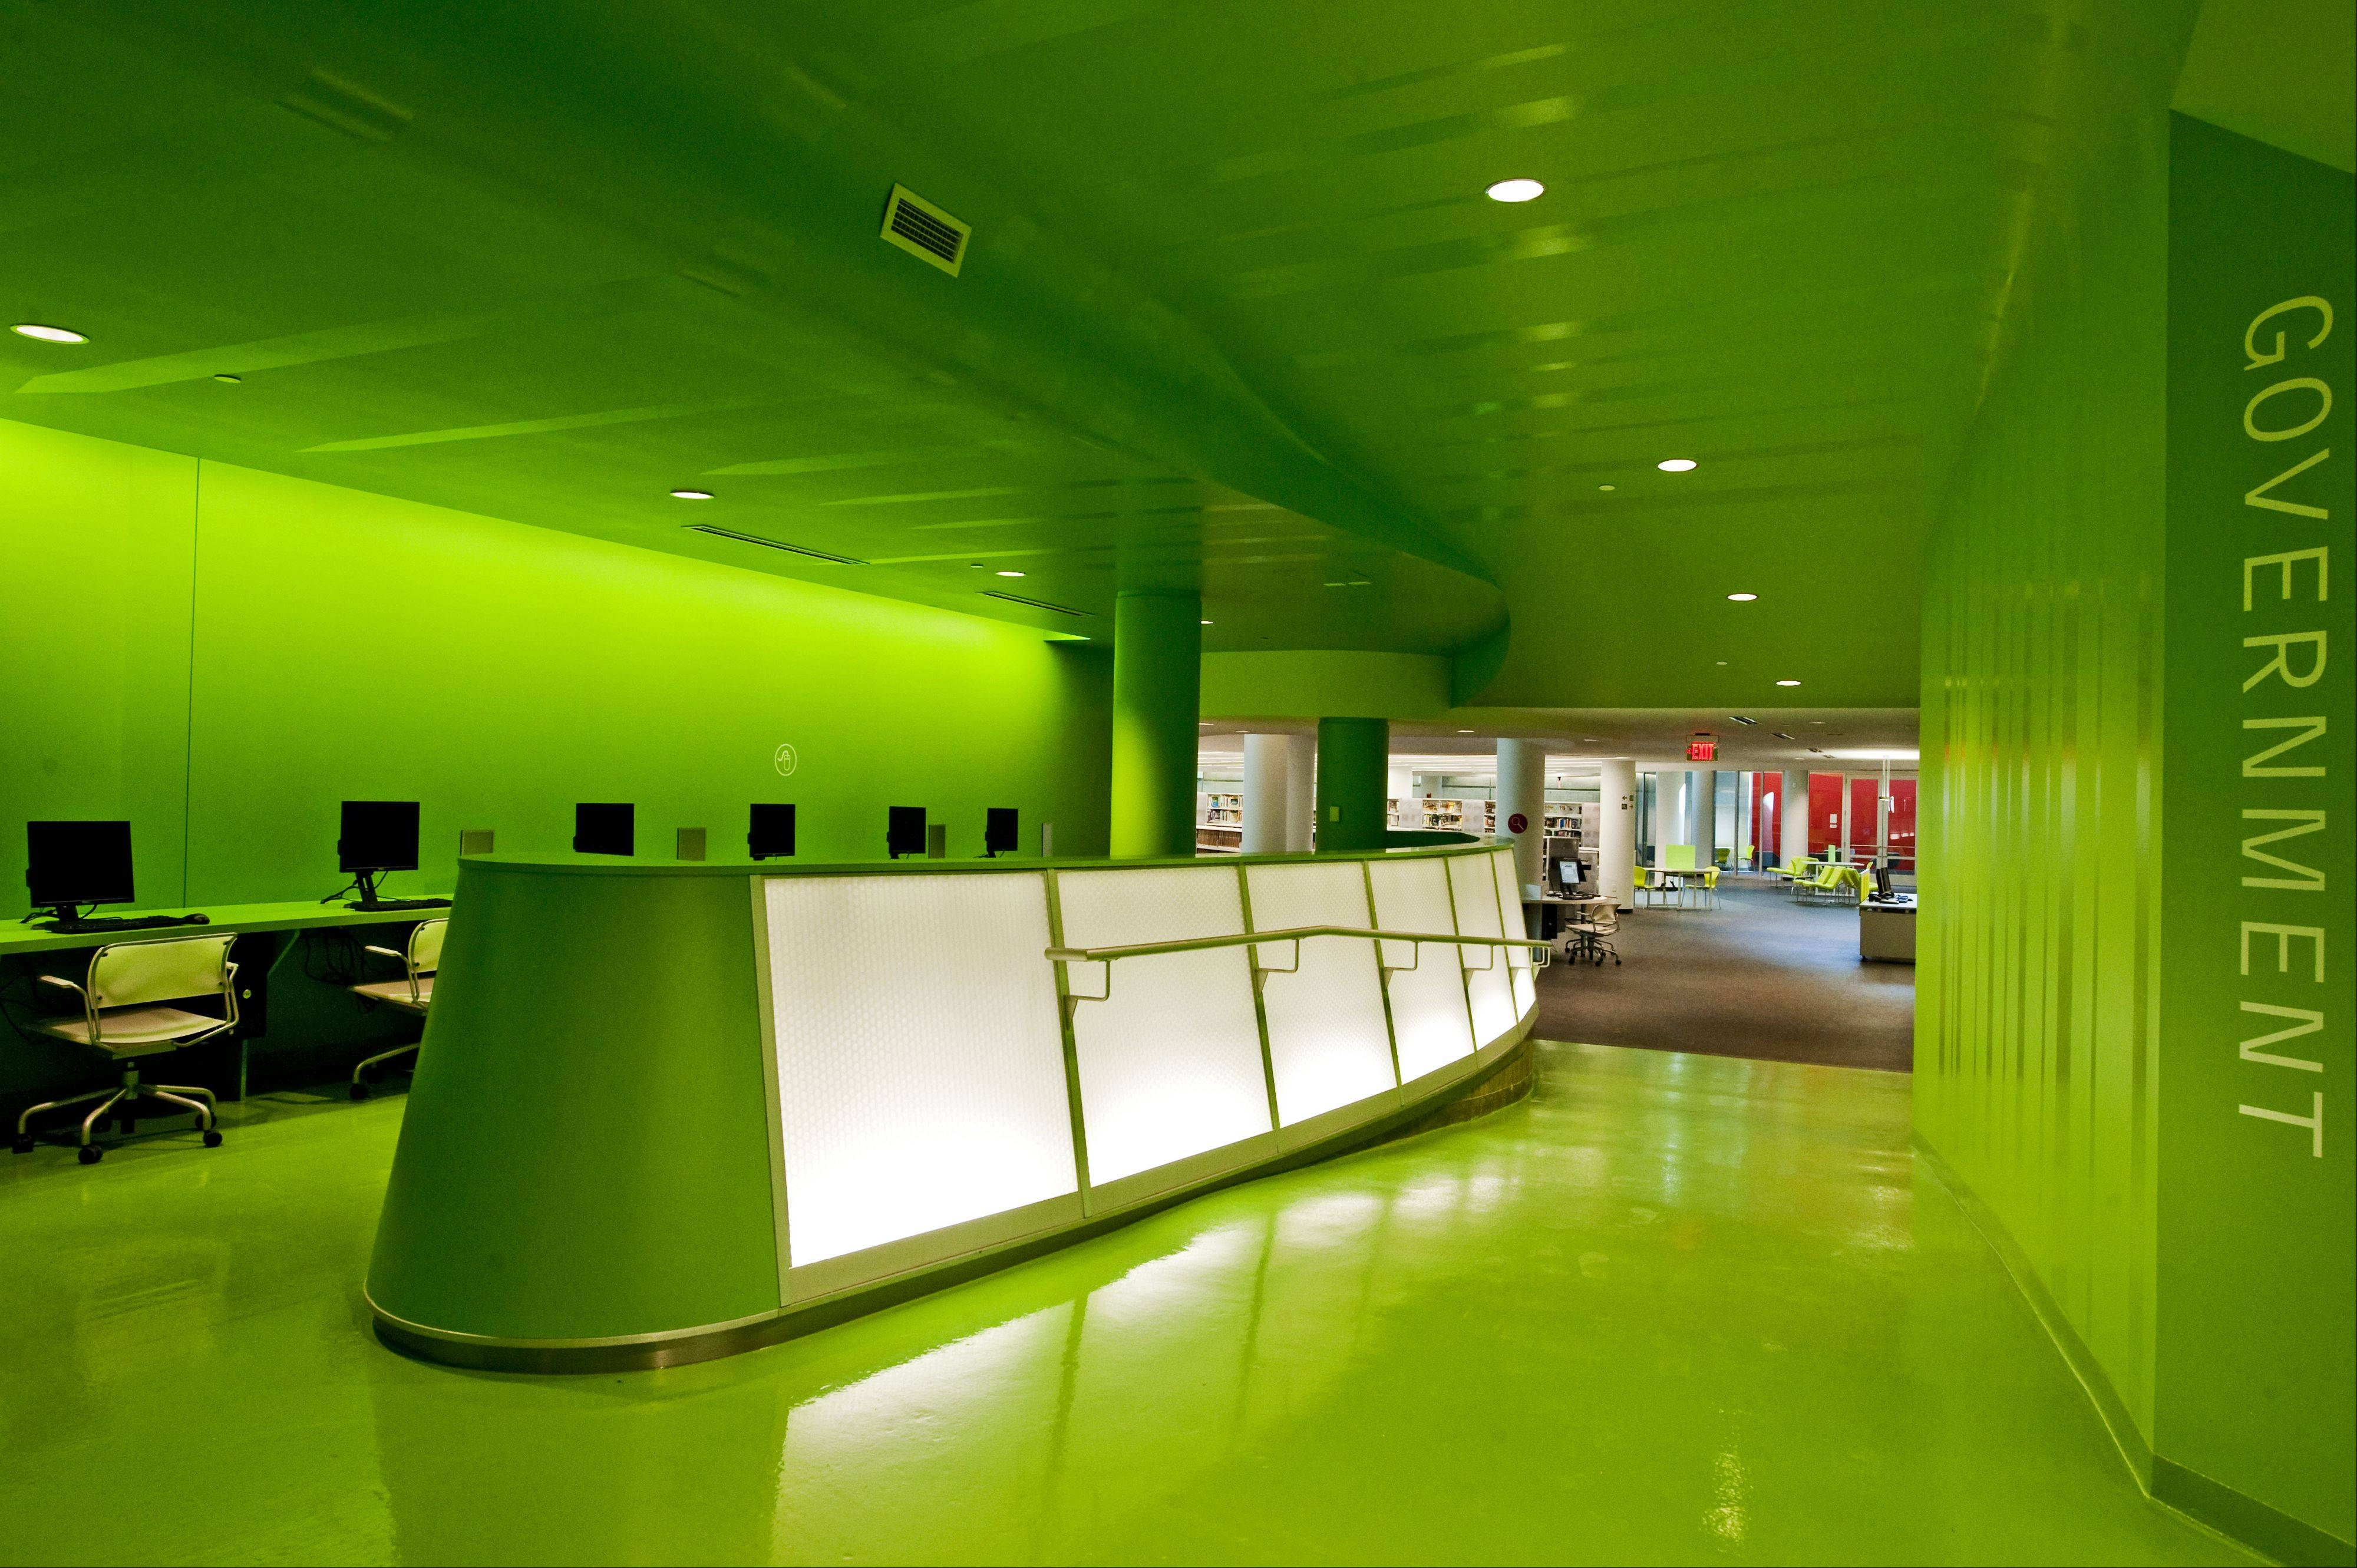 The information commons is painted in bright green and lined with computers.